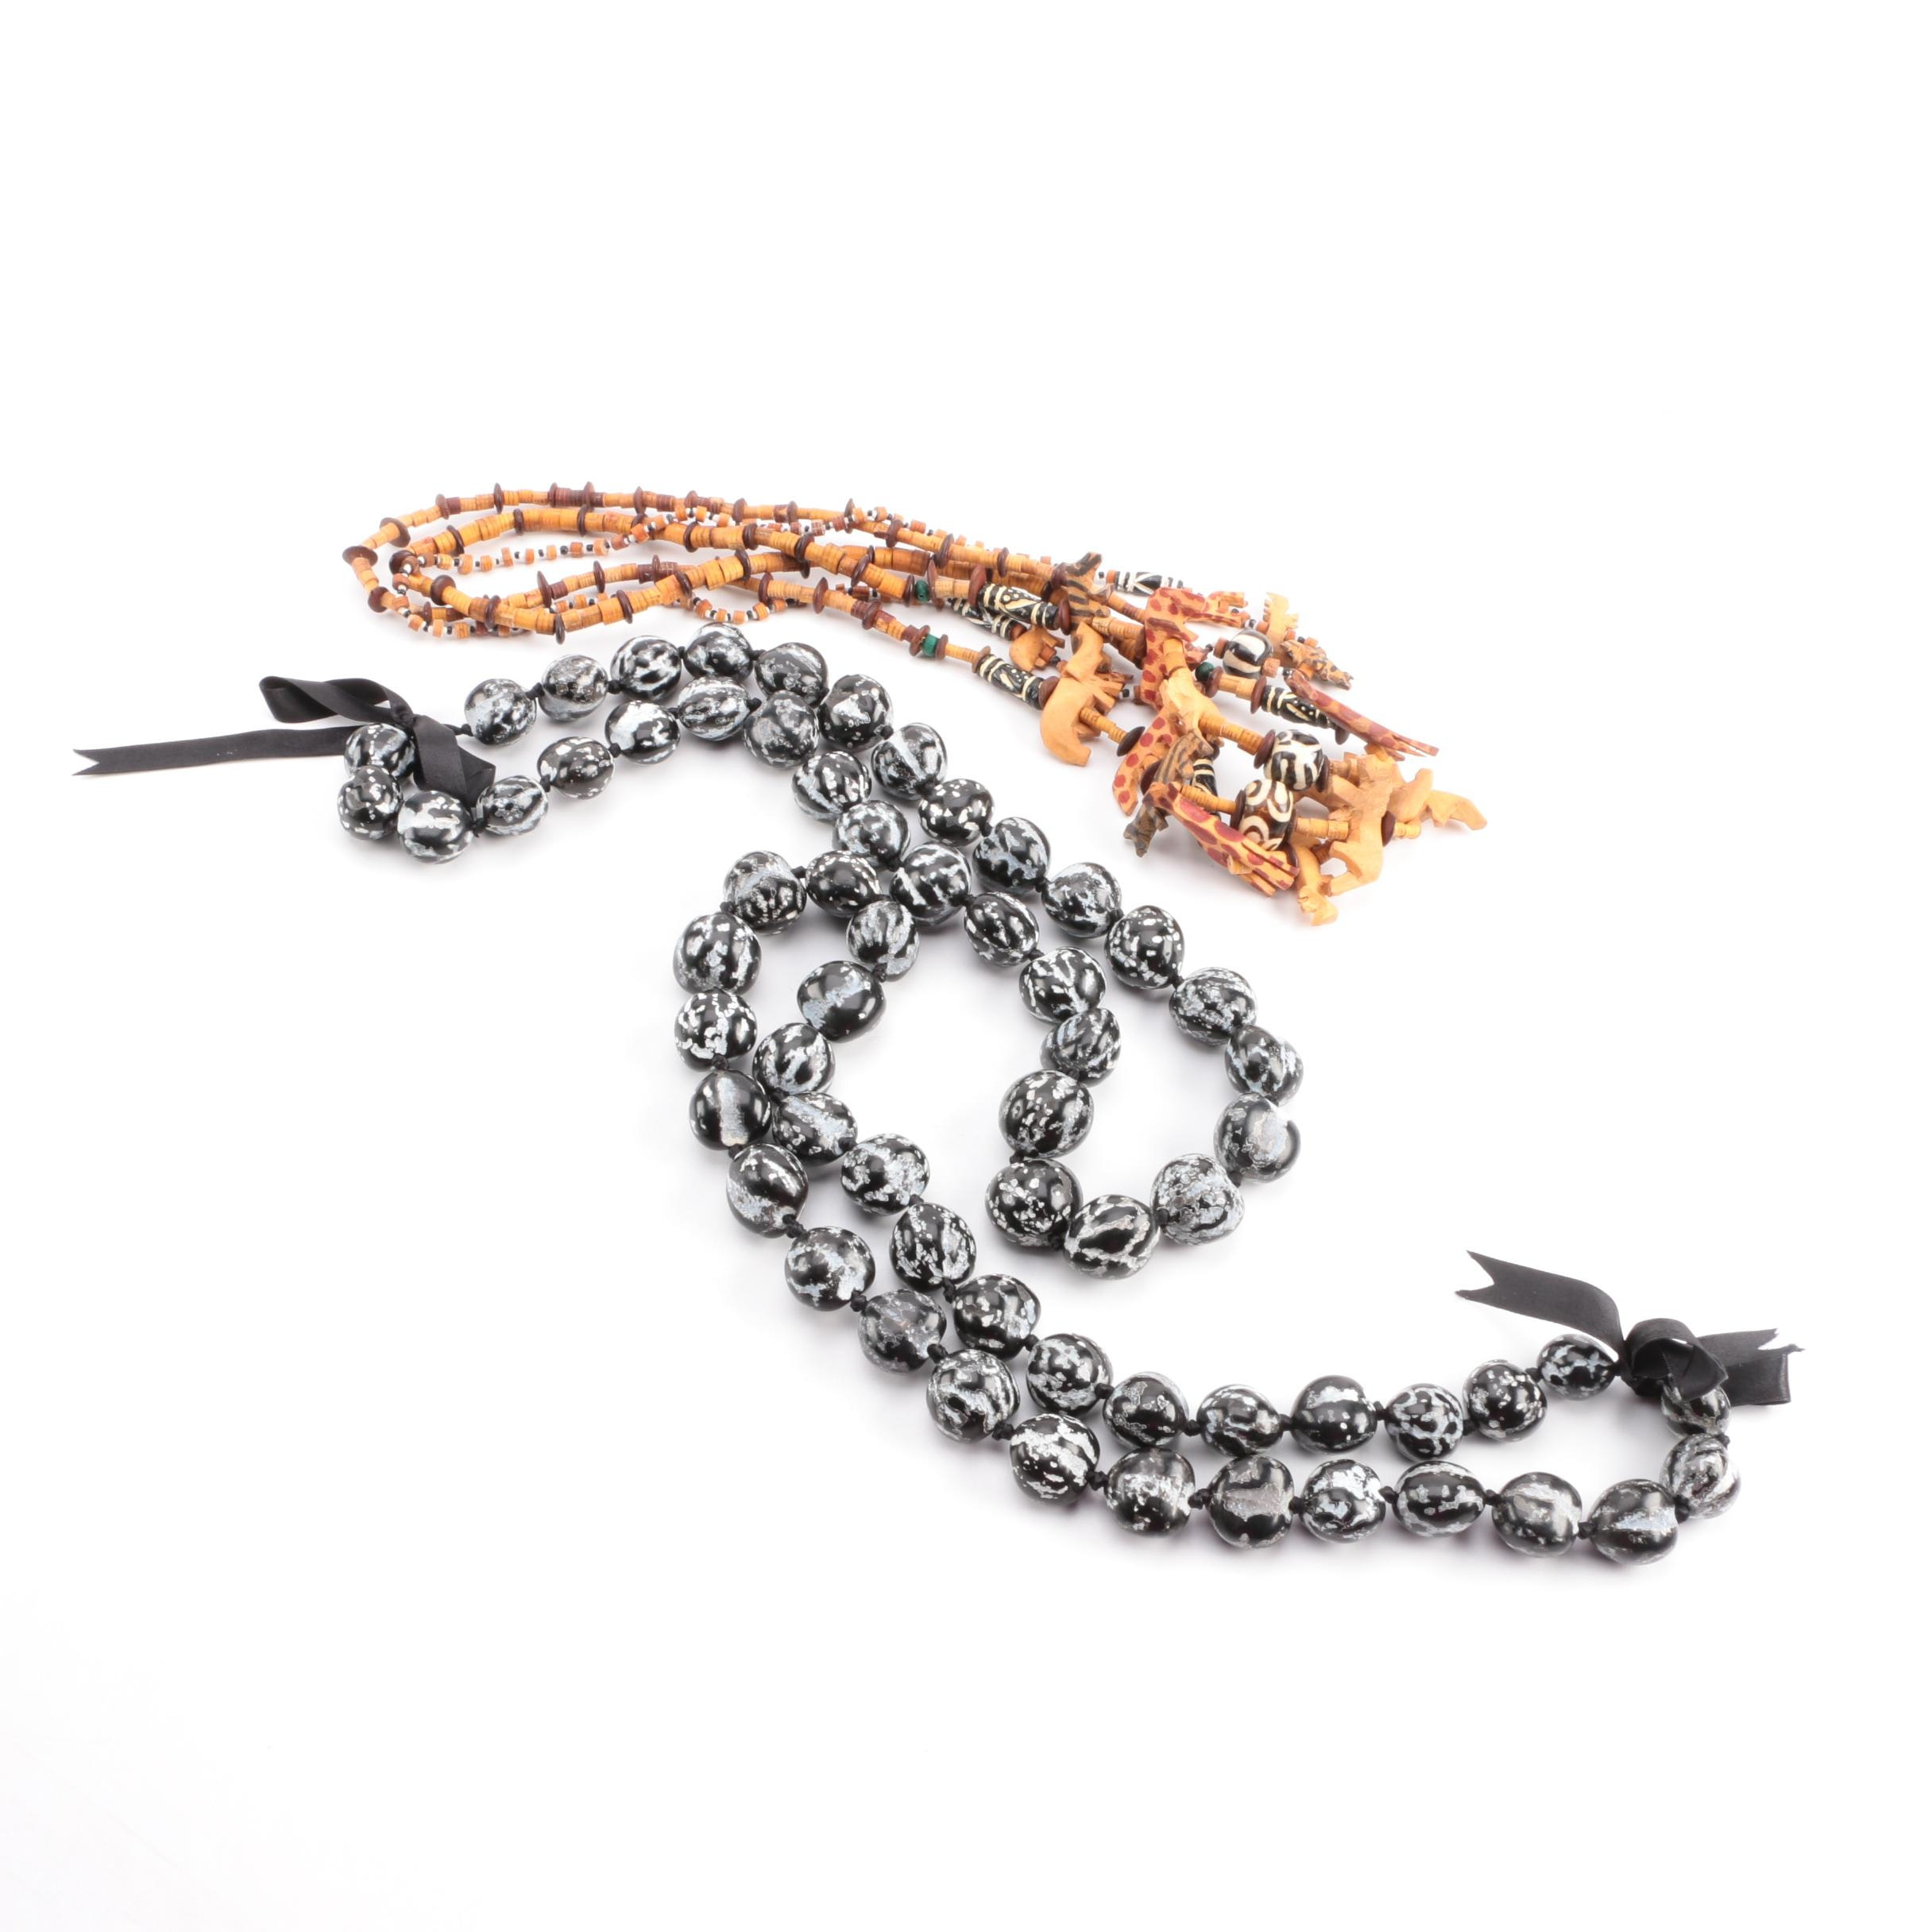 Beaded Necklaces Including Fetish Necklaces